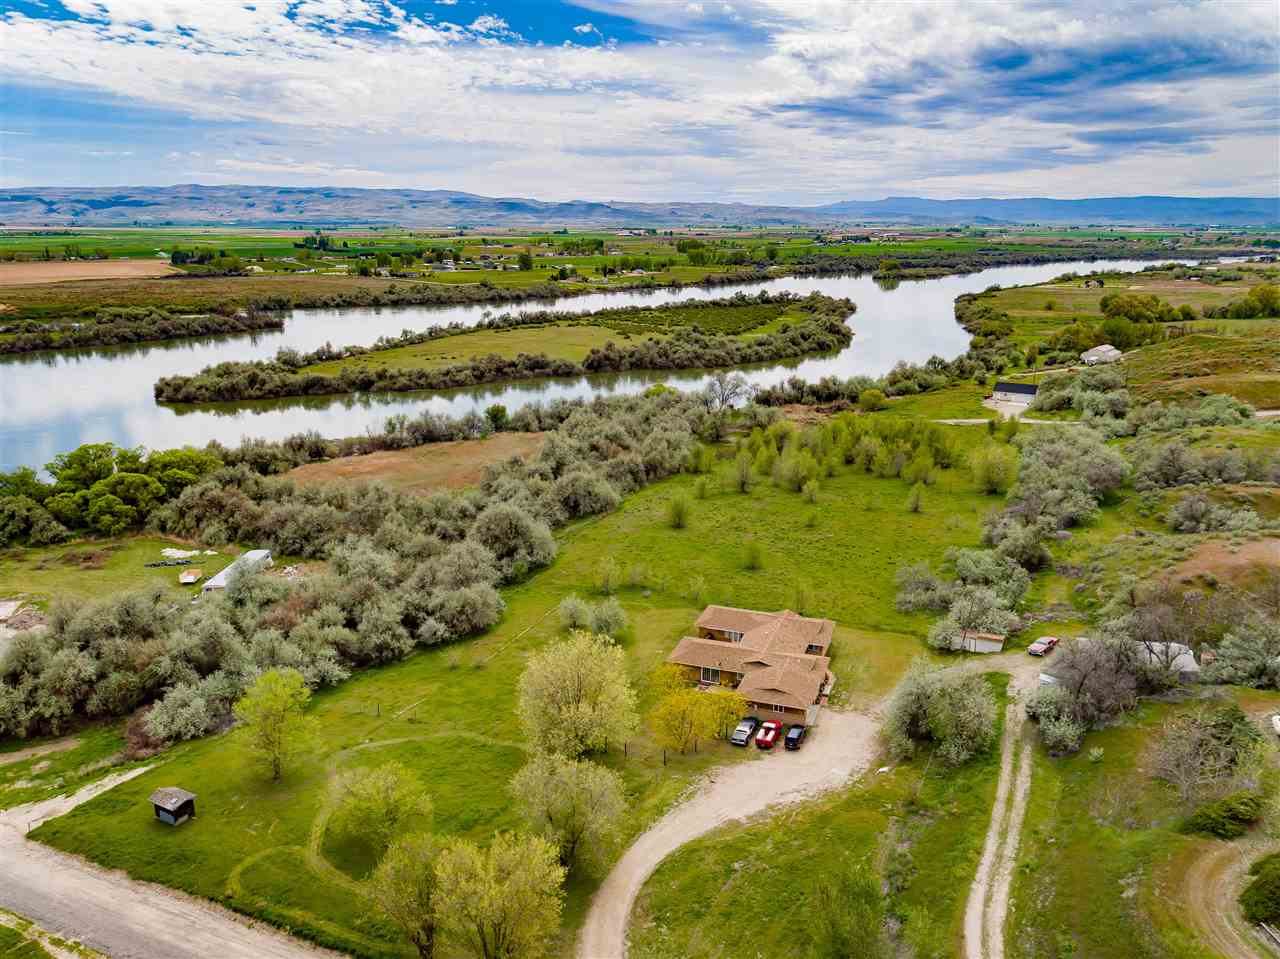 Single Family Home for Sale at 15742 Allendale Rd 15742 Allendale Rd Wilder, Idaho 83676